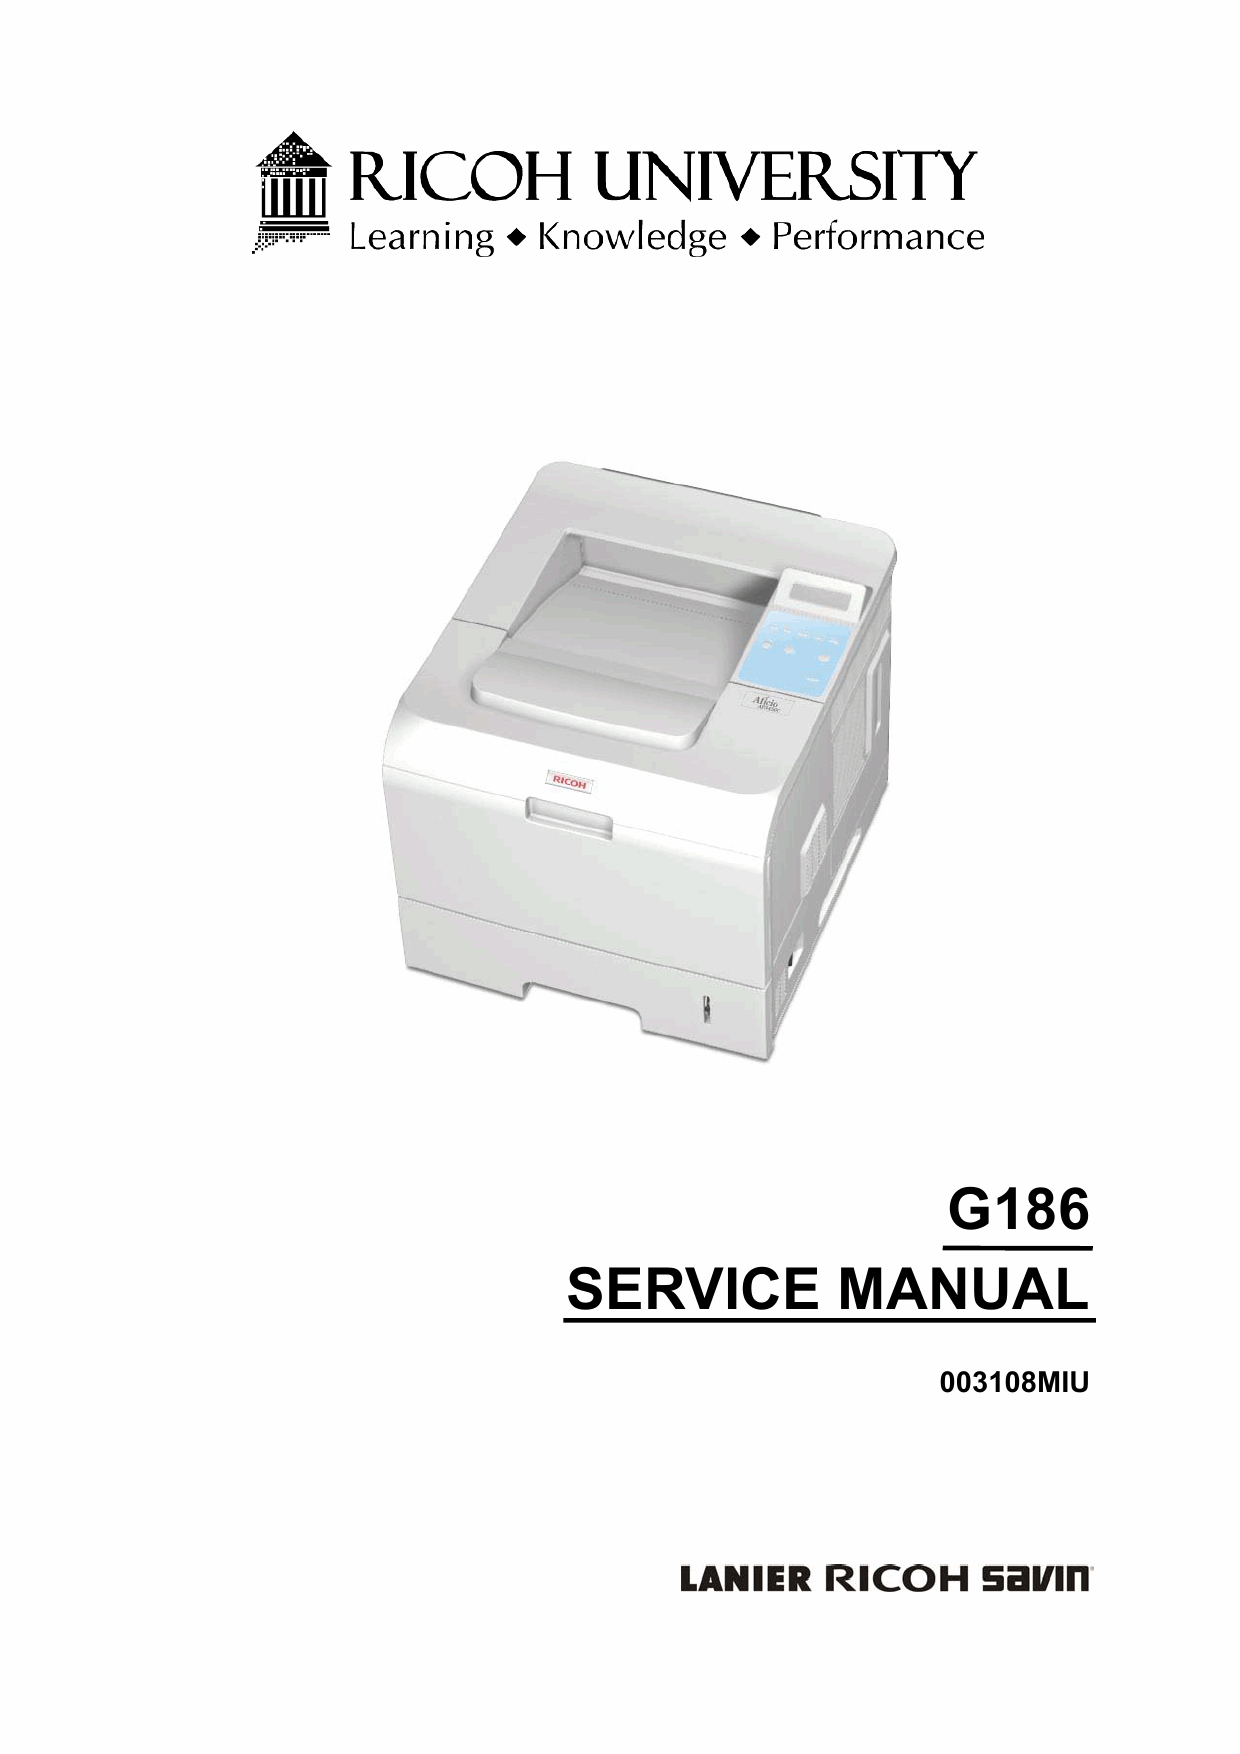 RICOH Aficio SP-5100N G186 Parts Service Manual-1